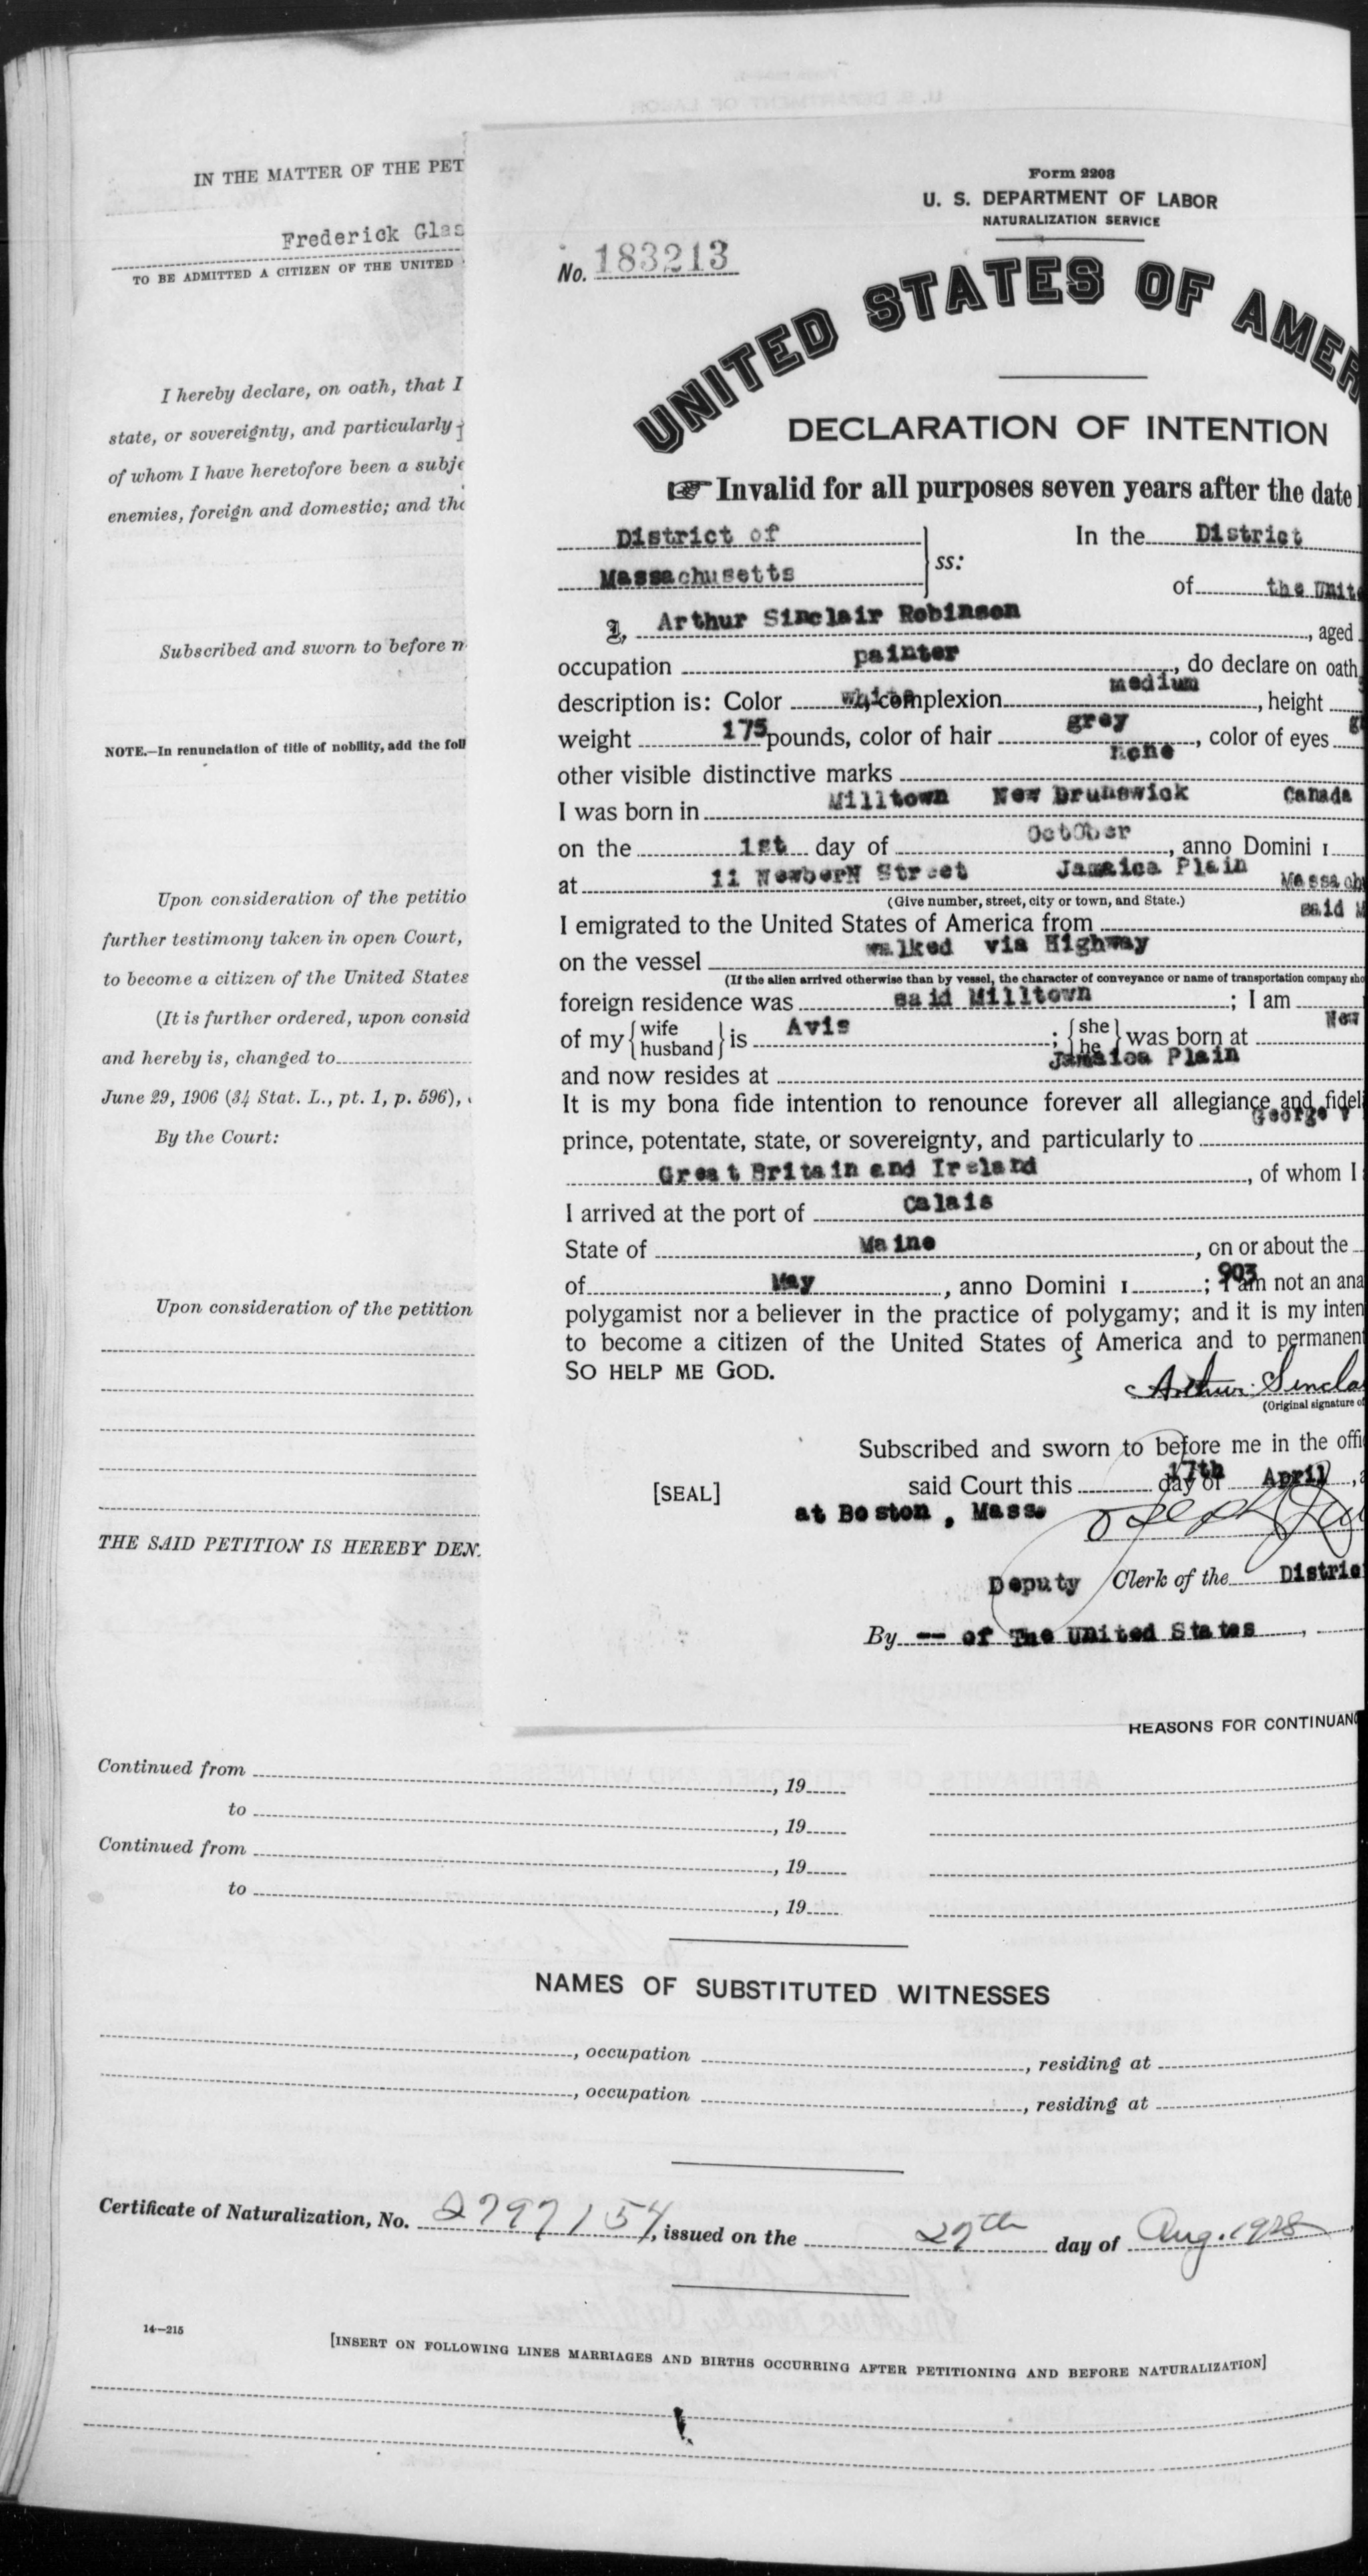 Petition for Naturalization of Arthur Sinclair Robinson